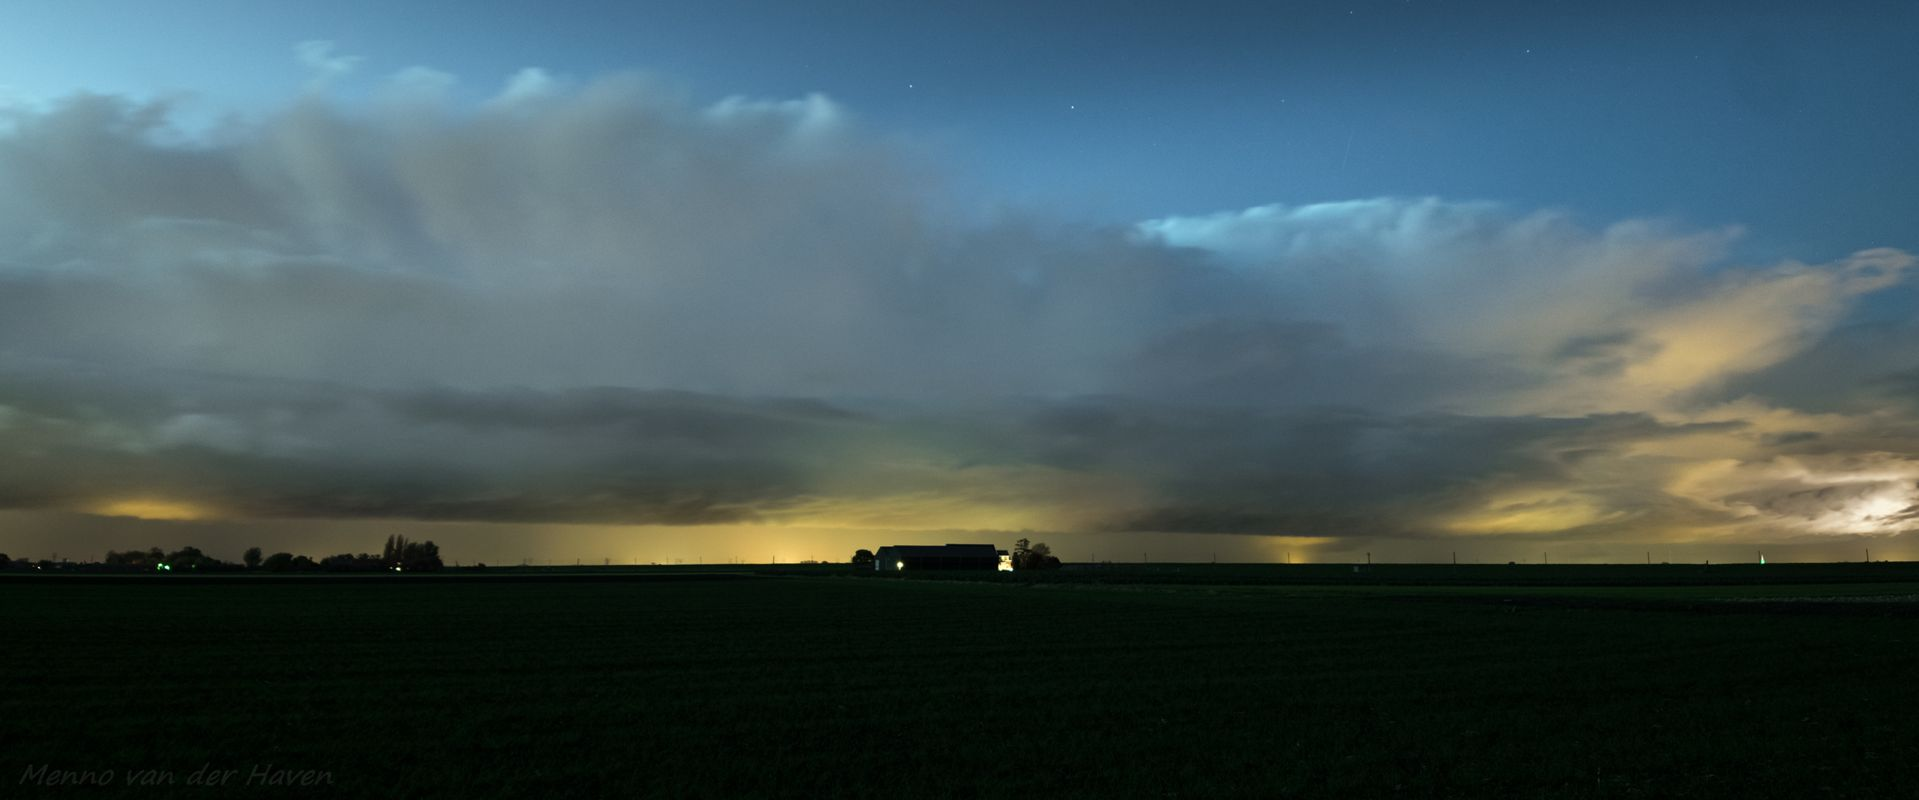 Panorama of autumn showers along the shore